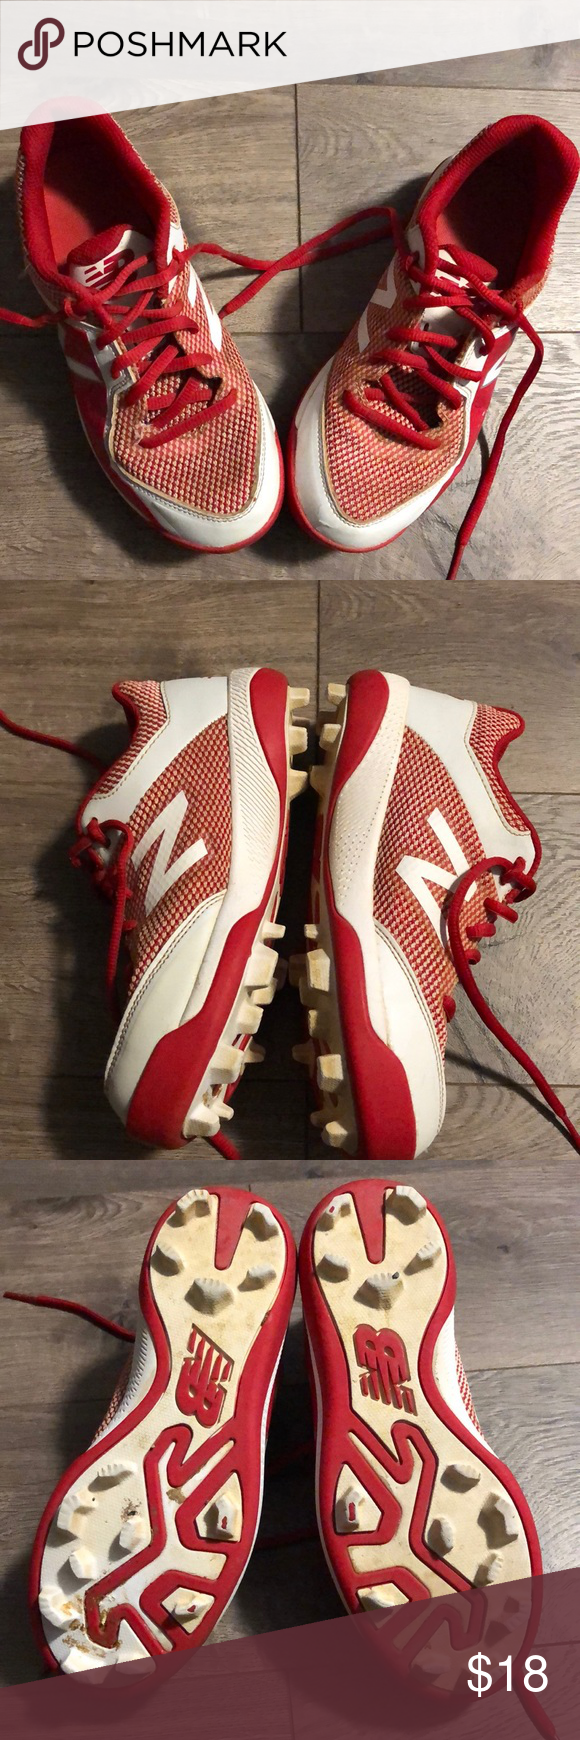 New Nike Softball Baseball Cleats Women 7 Style 333783 011 New Nike Cleats Shoelaces Have A Bit Of Fuzziness Due To Them Get Shoe Laces New Nike Nike Cleats